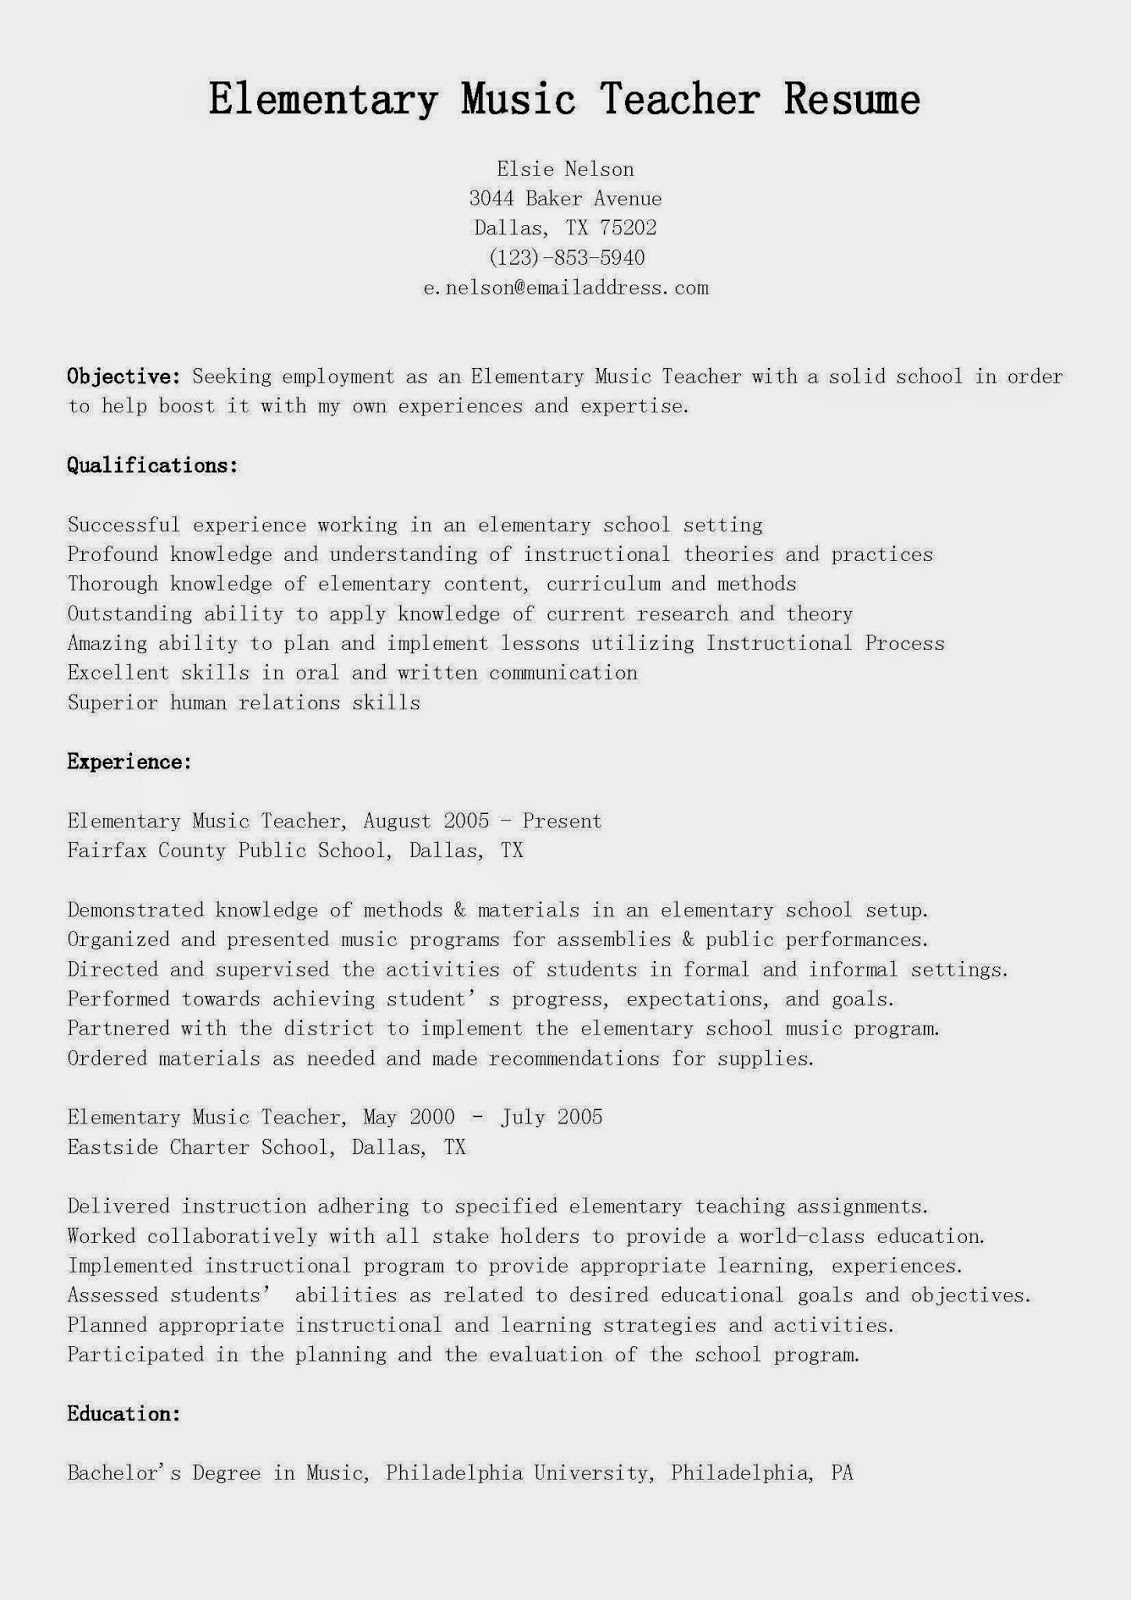 Example Resume Good Resume Pdf Templates With Skills And GTI Platform  Teacher Resume Objective Examples